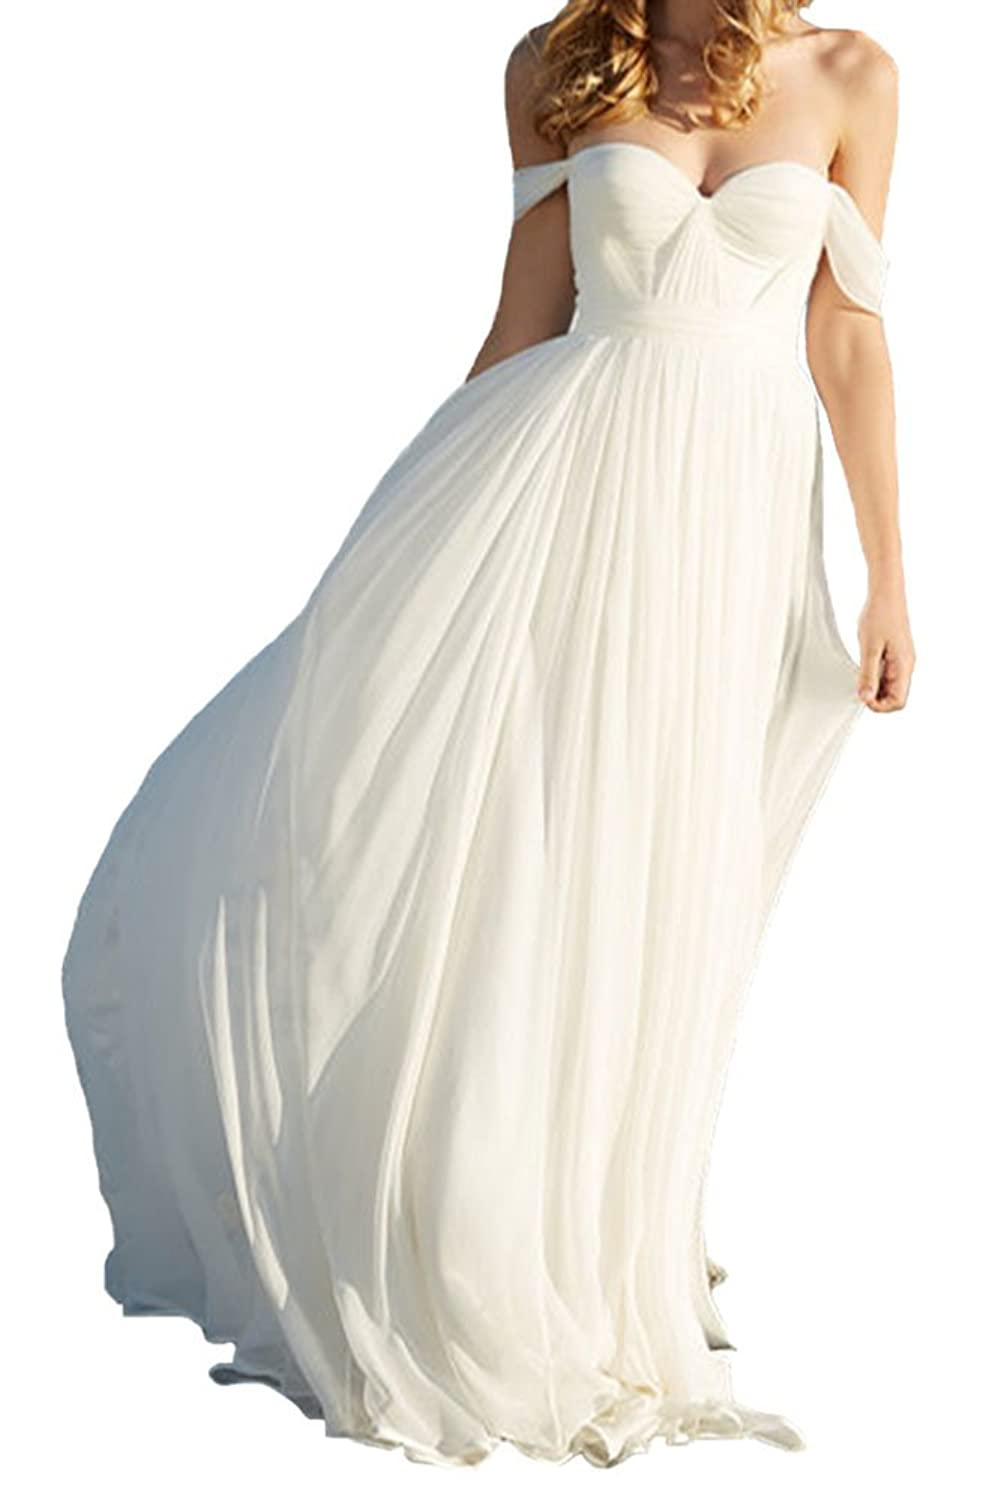 Amazon.com: Lovelybride Elegant A Line Empire Long Chiffon Bridal Beach Wedding  Dress: Clothing